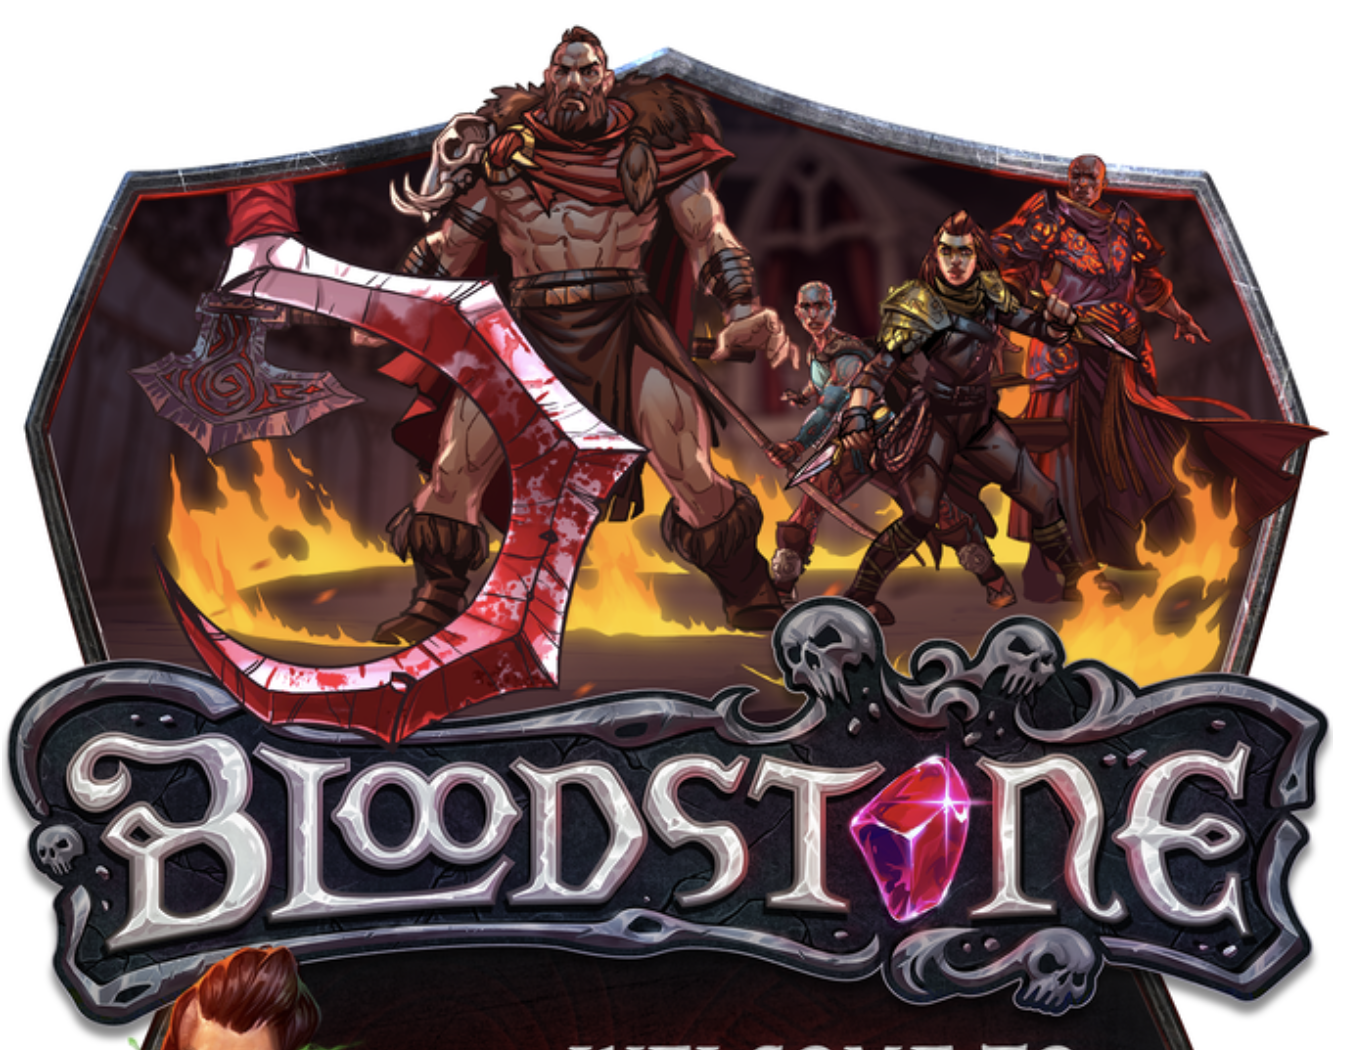 The Bloodstone logo and some fantasy warrior characters.